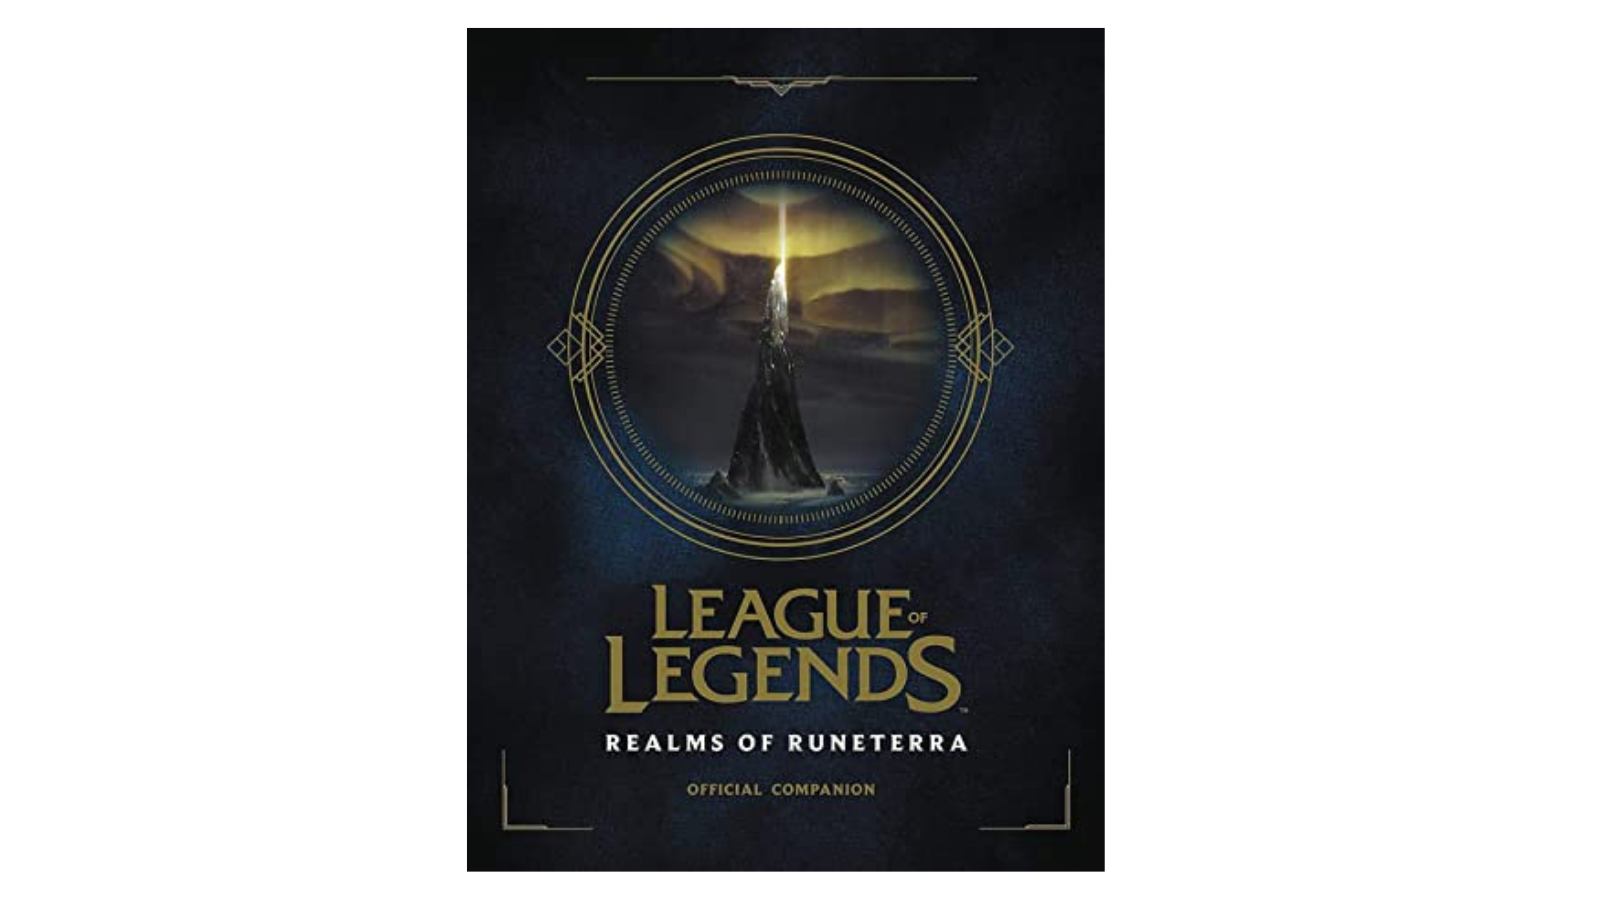 Save 50% on League of Legends- Realms of Runeterra